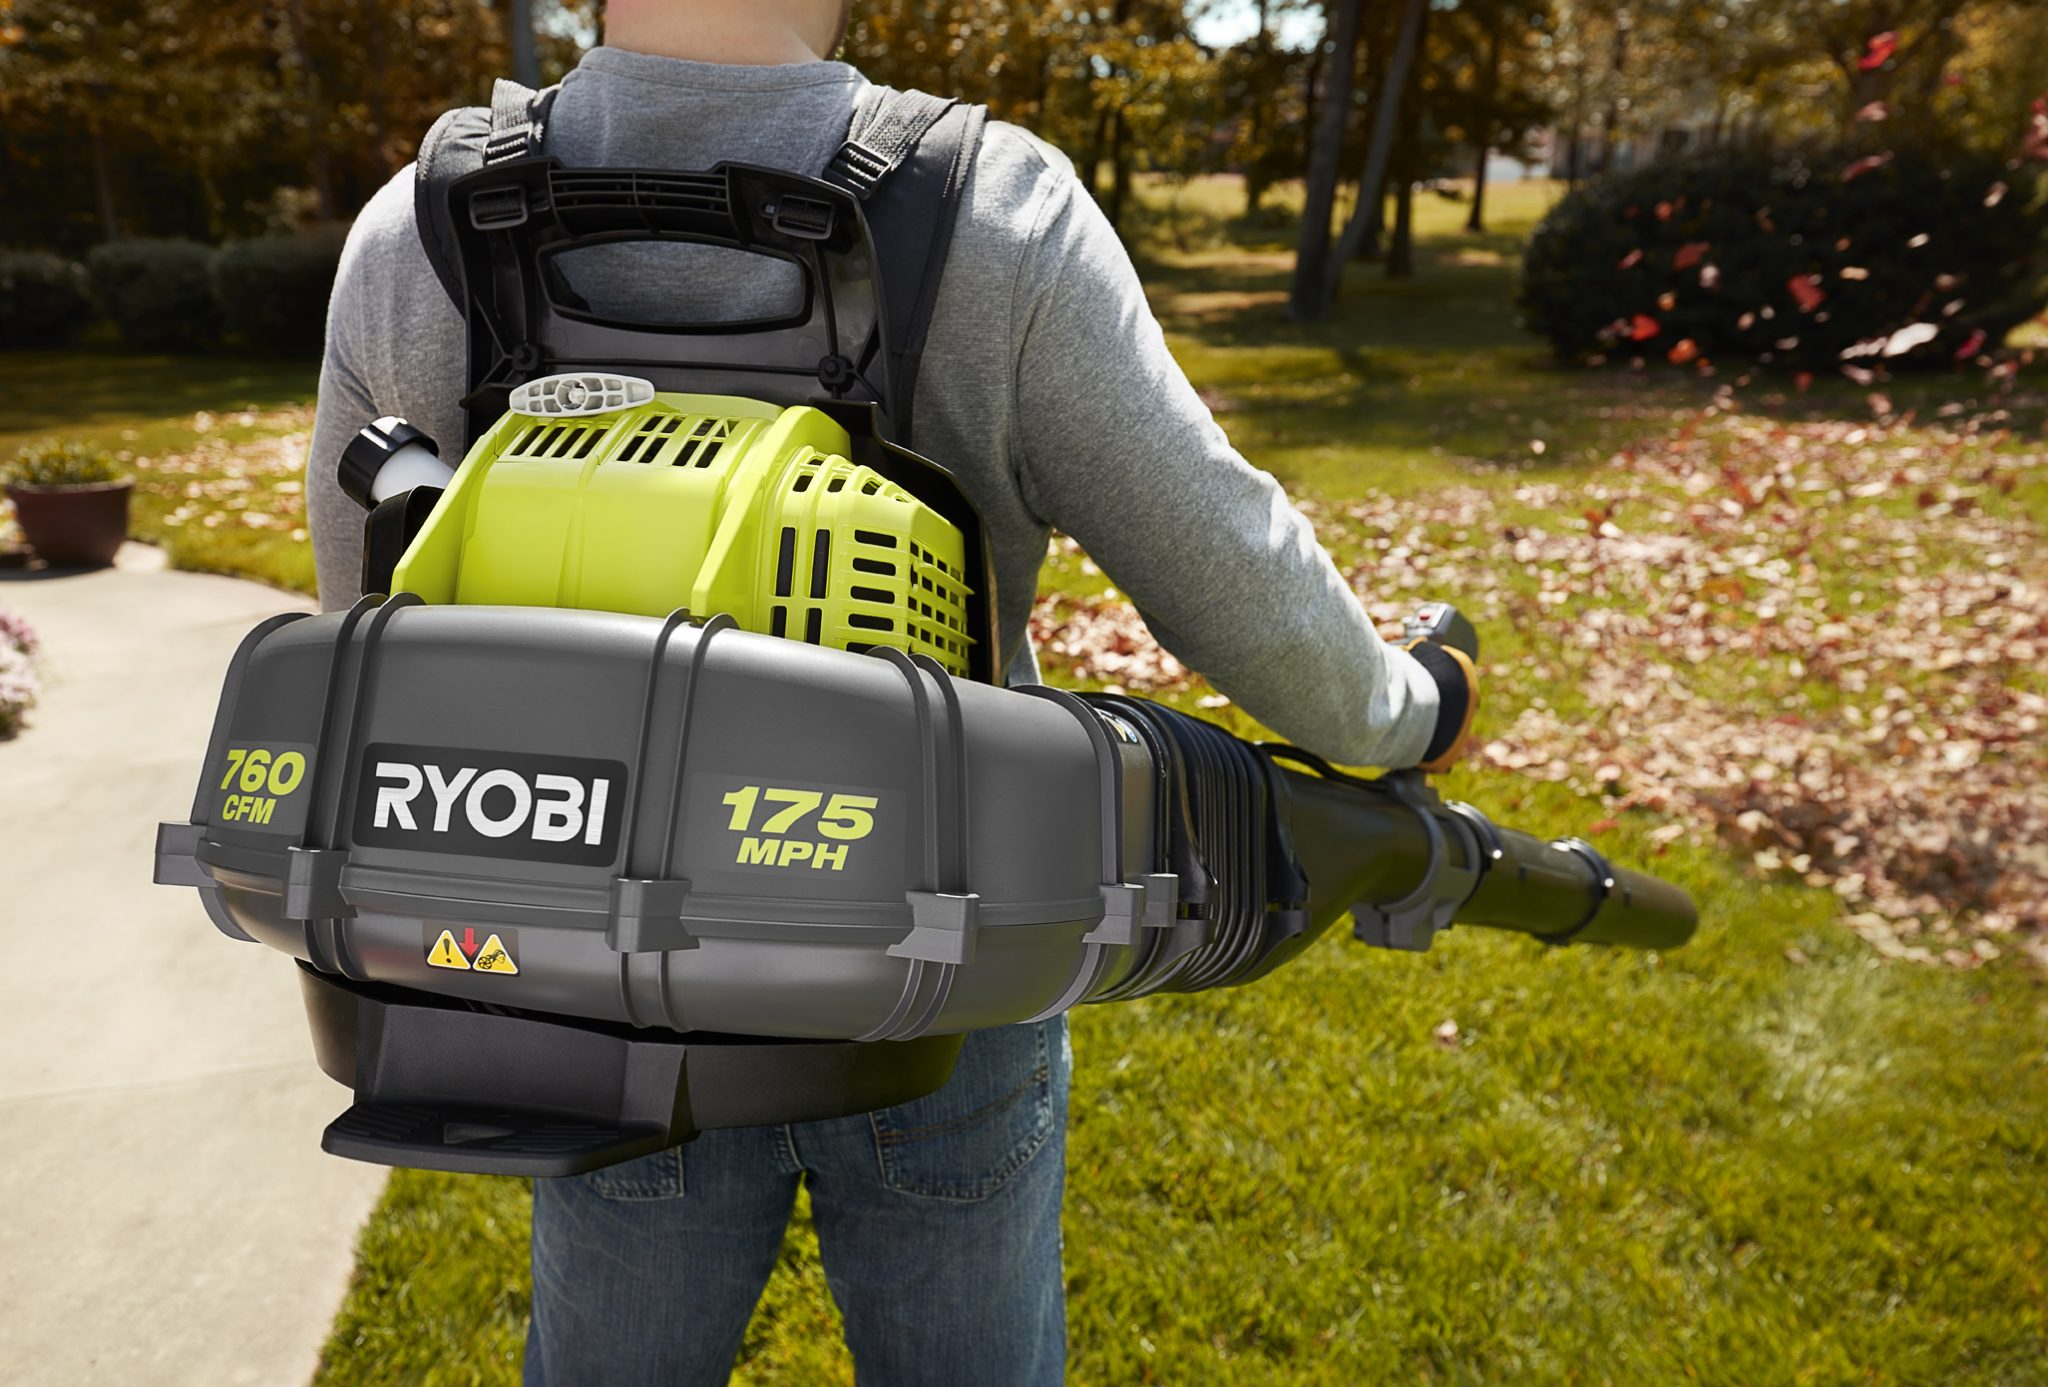 Ryobi Backpack Blower Extreme How To Blog